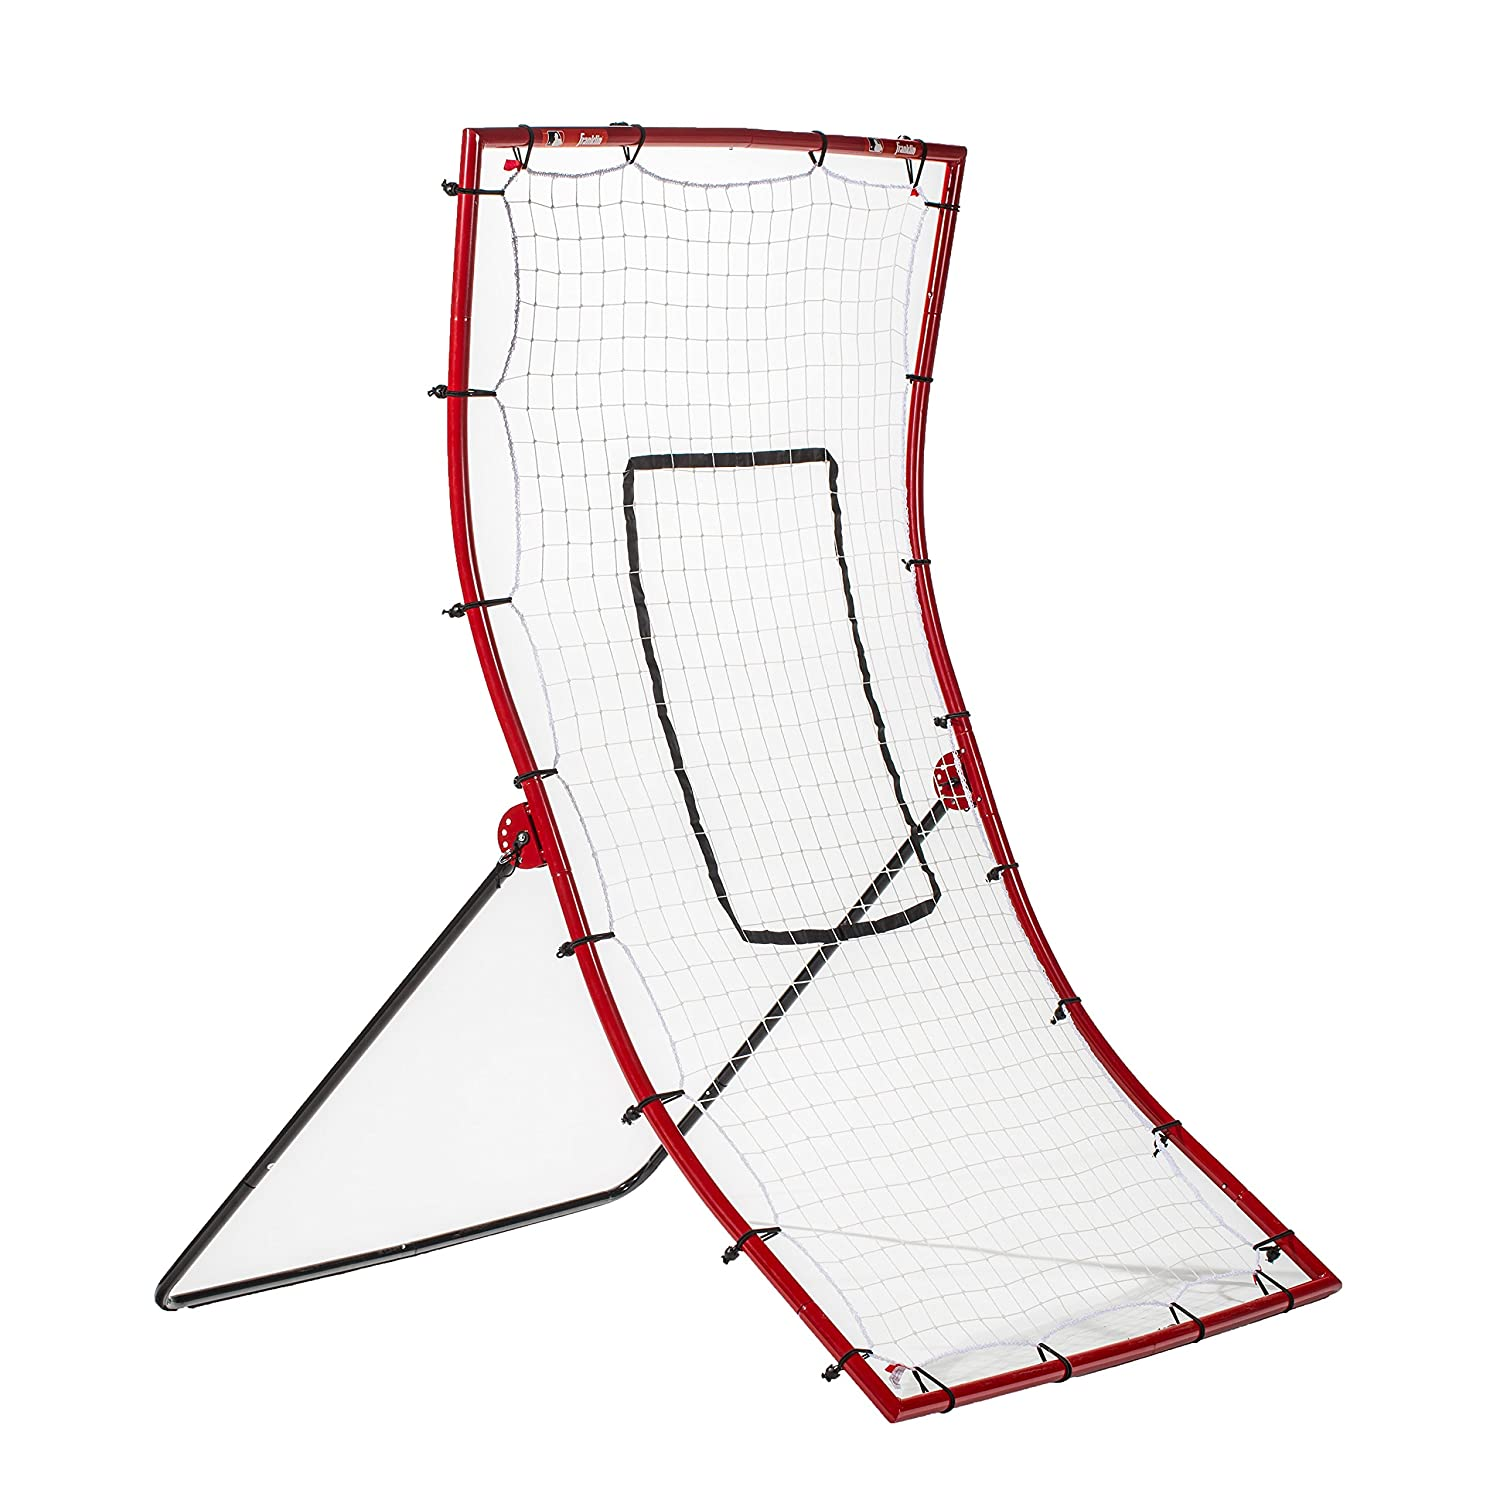 Franklin Sports MLB Multi-Position Return Trainer \u2014 Flyback and Pitchback Baseball for Field Practice Weather-Resistant Pitch Amazon.com : Back